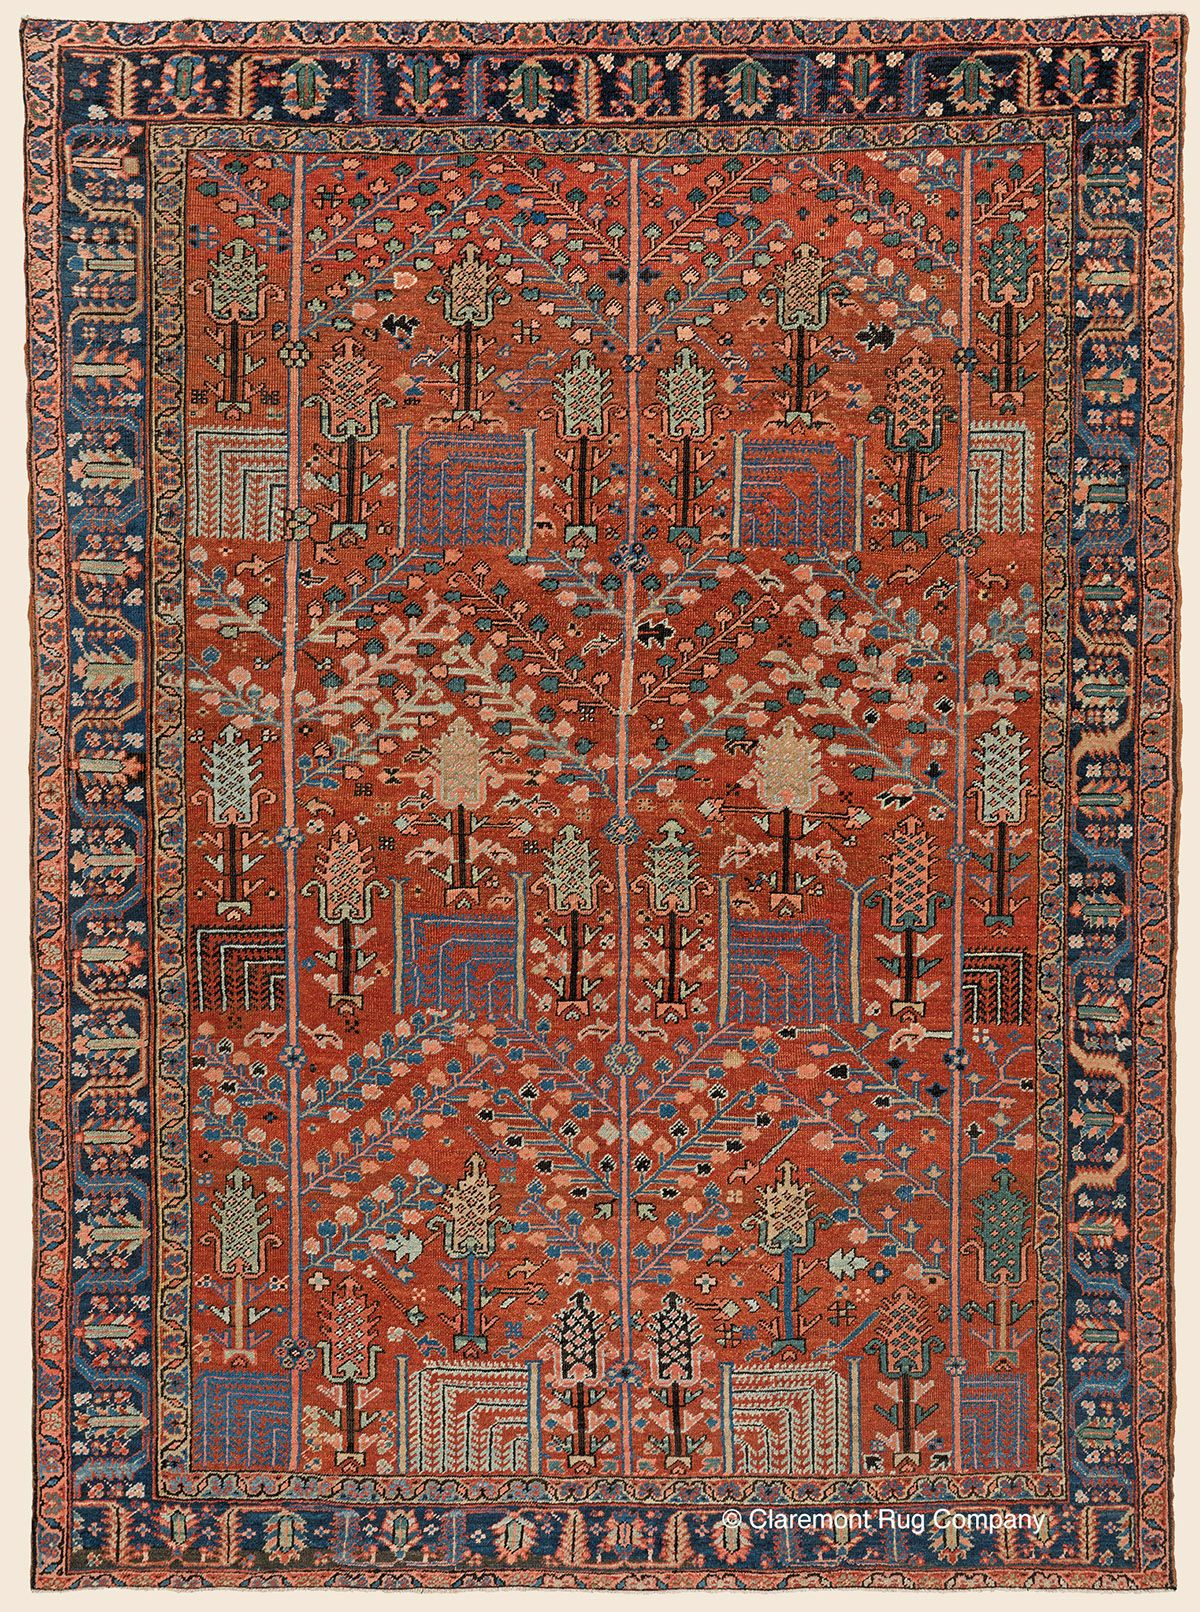 Sorry This Rug Is No Longer Available Claremont Rug Company Rugs Claremont Rug Company Rugs On Carpet